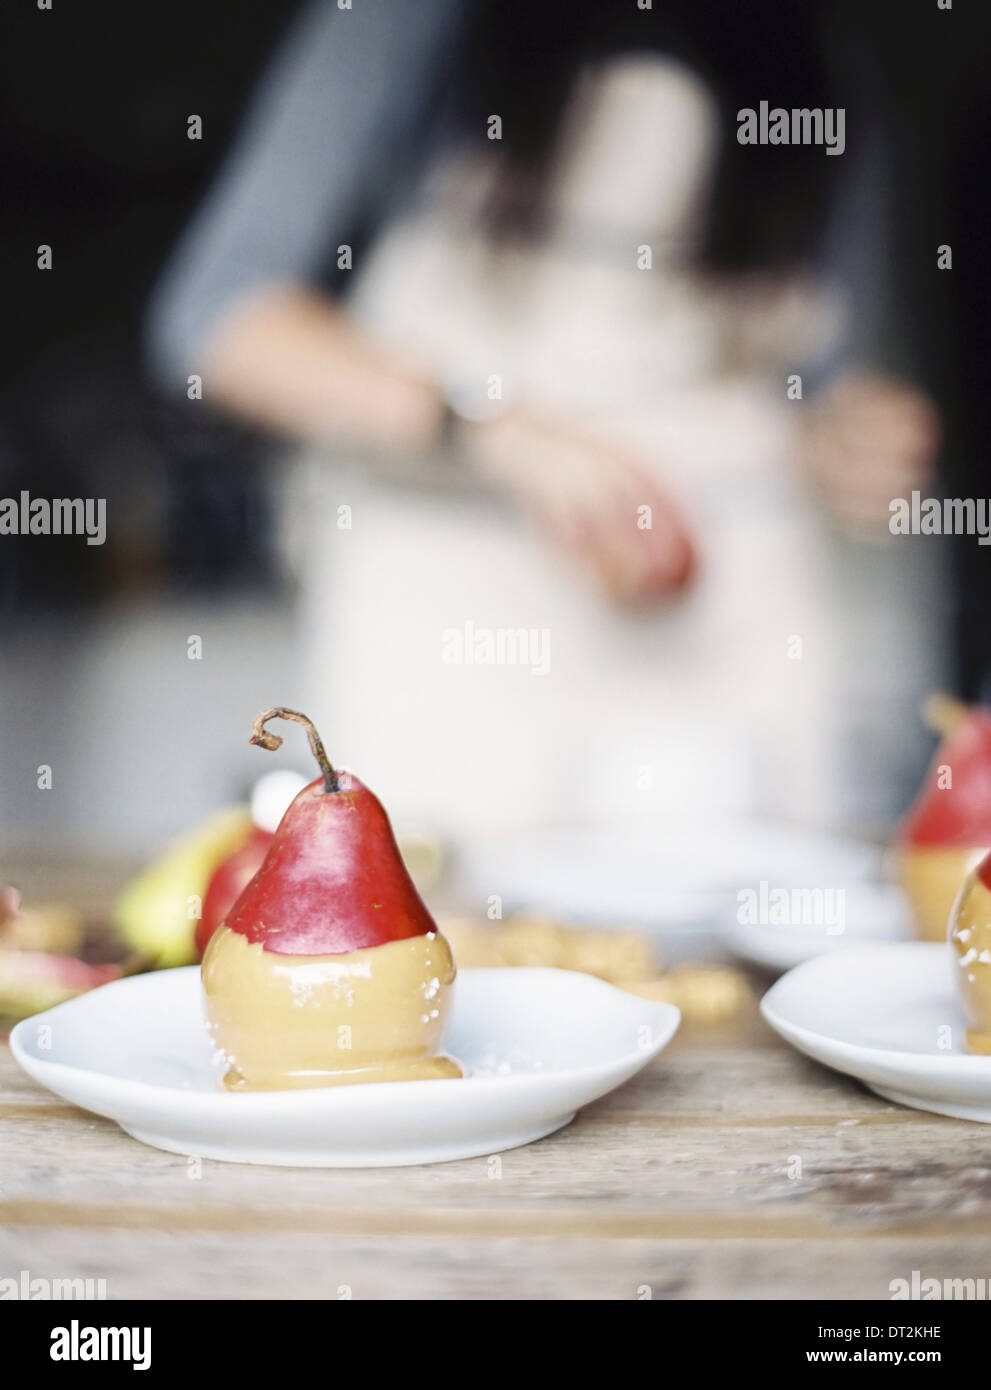 A woman in a domestic kitchen Fresh organic pears dipped into a sauce for dessert laid out on plates - Stock Image